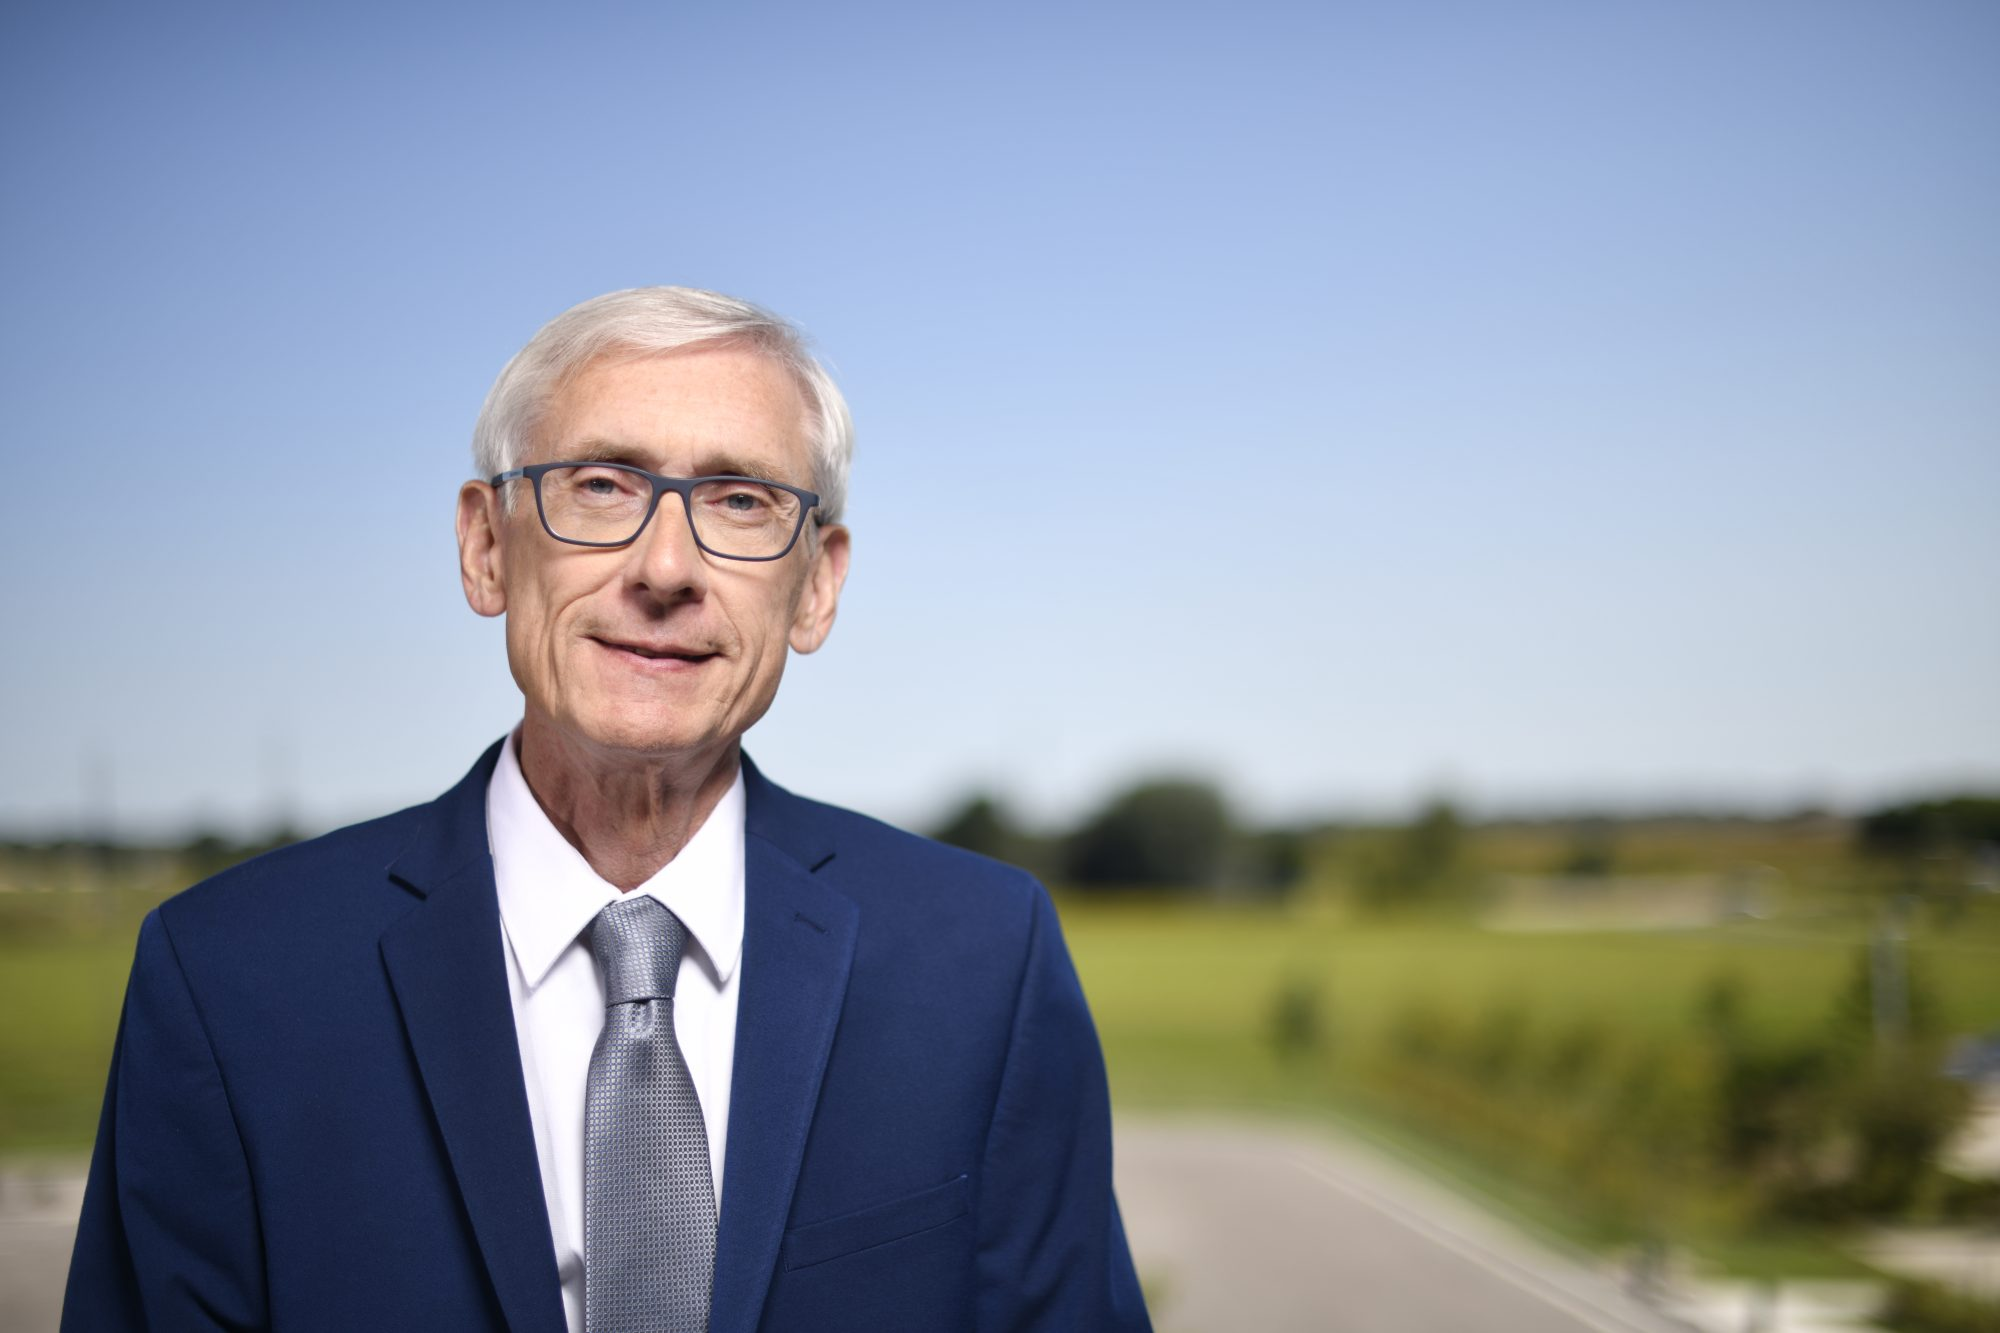 Gov. Evers Seeks Applicants for Winnebago County Circuit Court